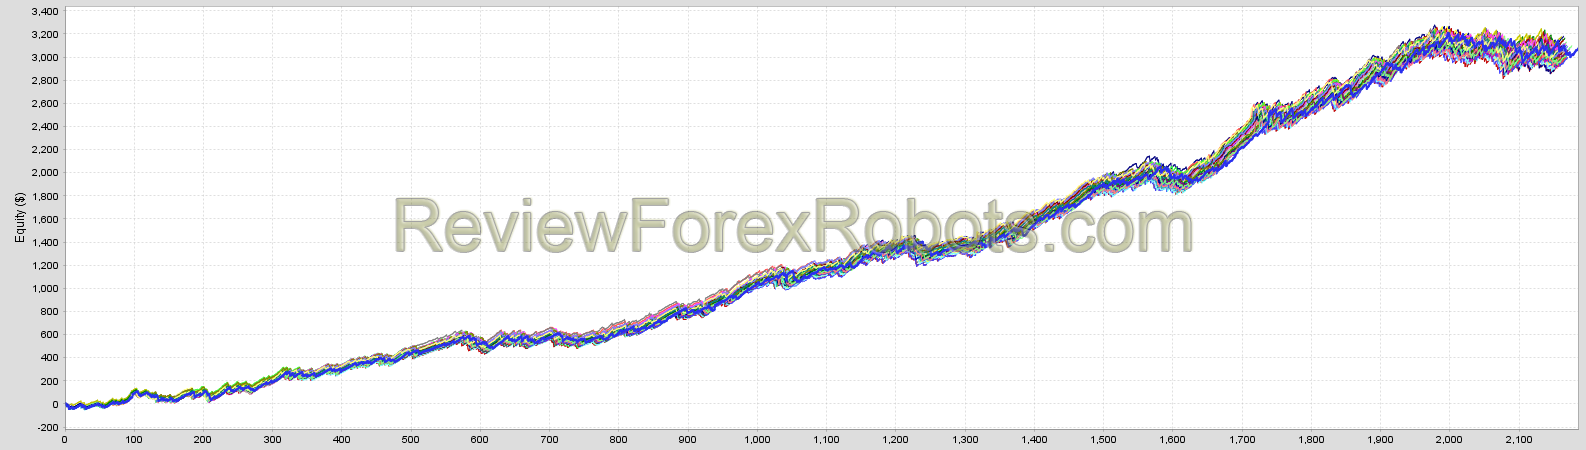 WallStreet Forex Robot 5.0, merged results for the fixed spread 2 tick data backtests for EURUSD and GBPUSD